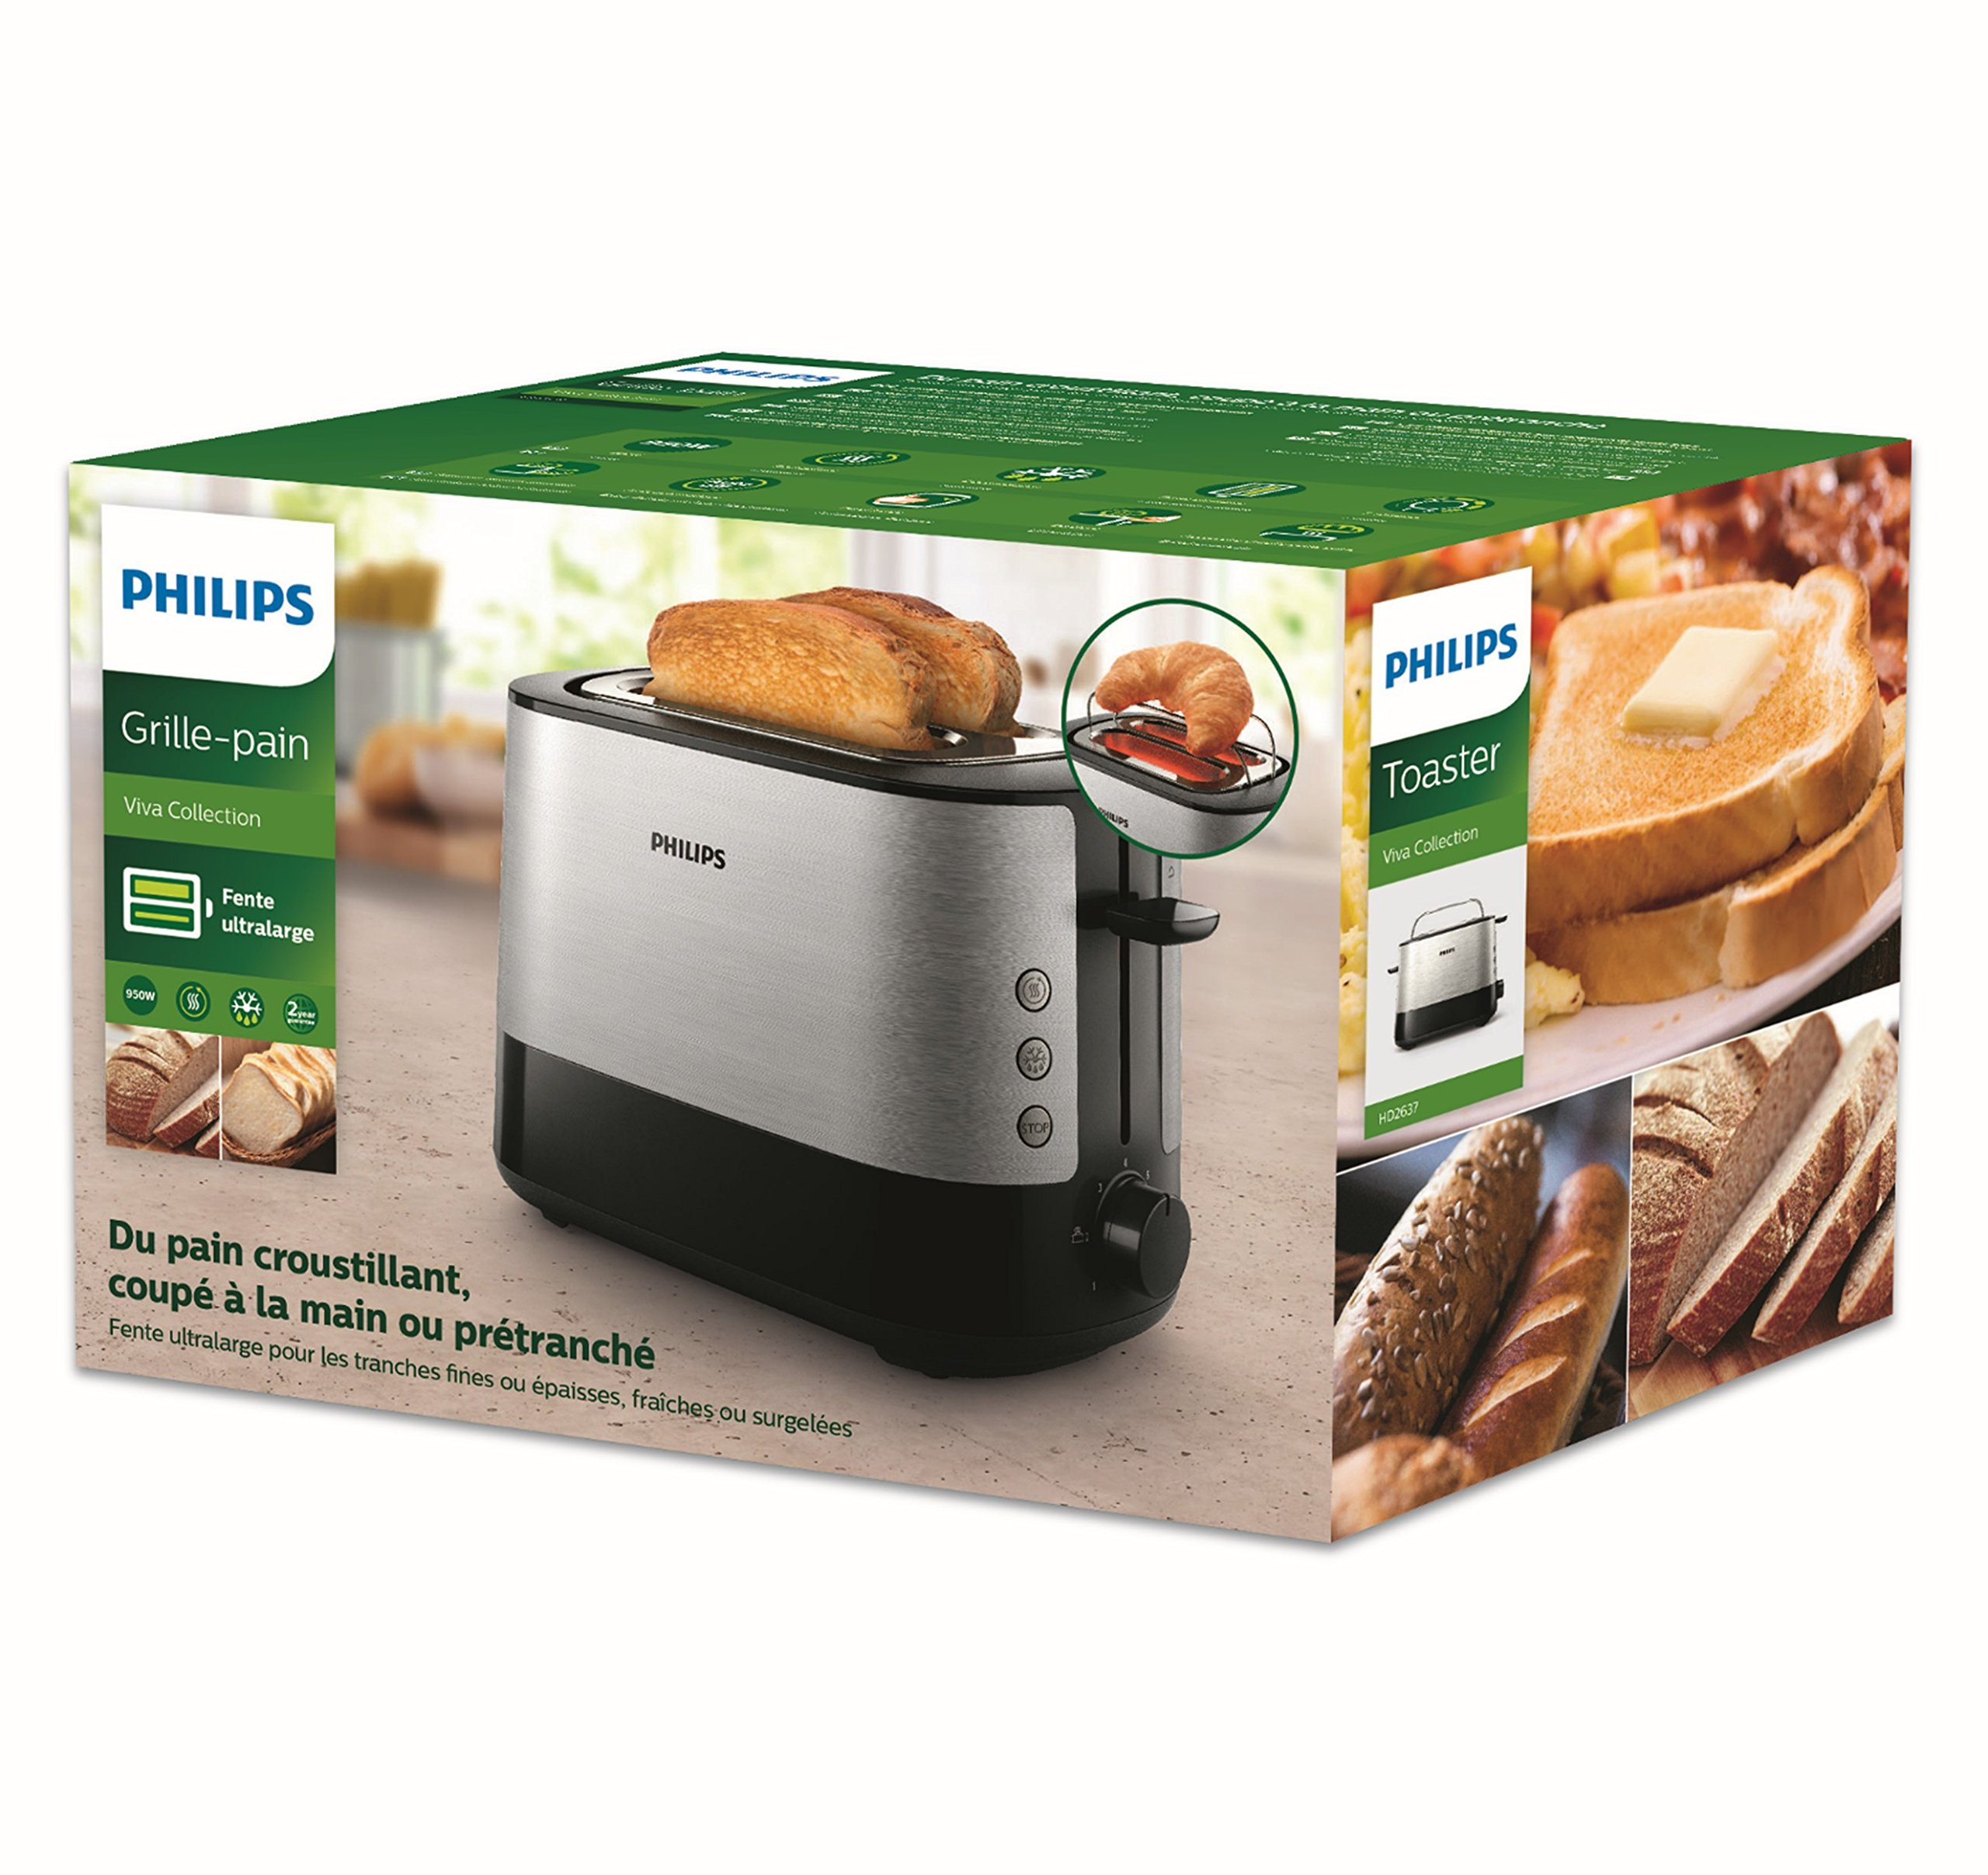 Philips-HD263790-Toaster-7-Stufen-Brtchenaufsatz-Stopp-Taste-1000-W